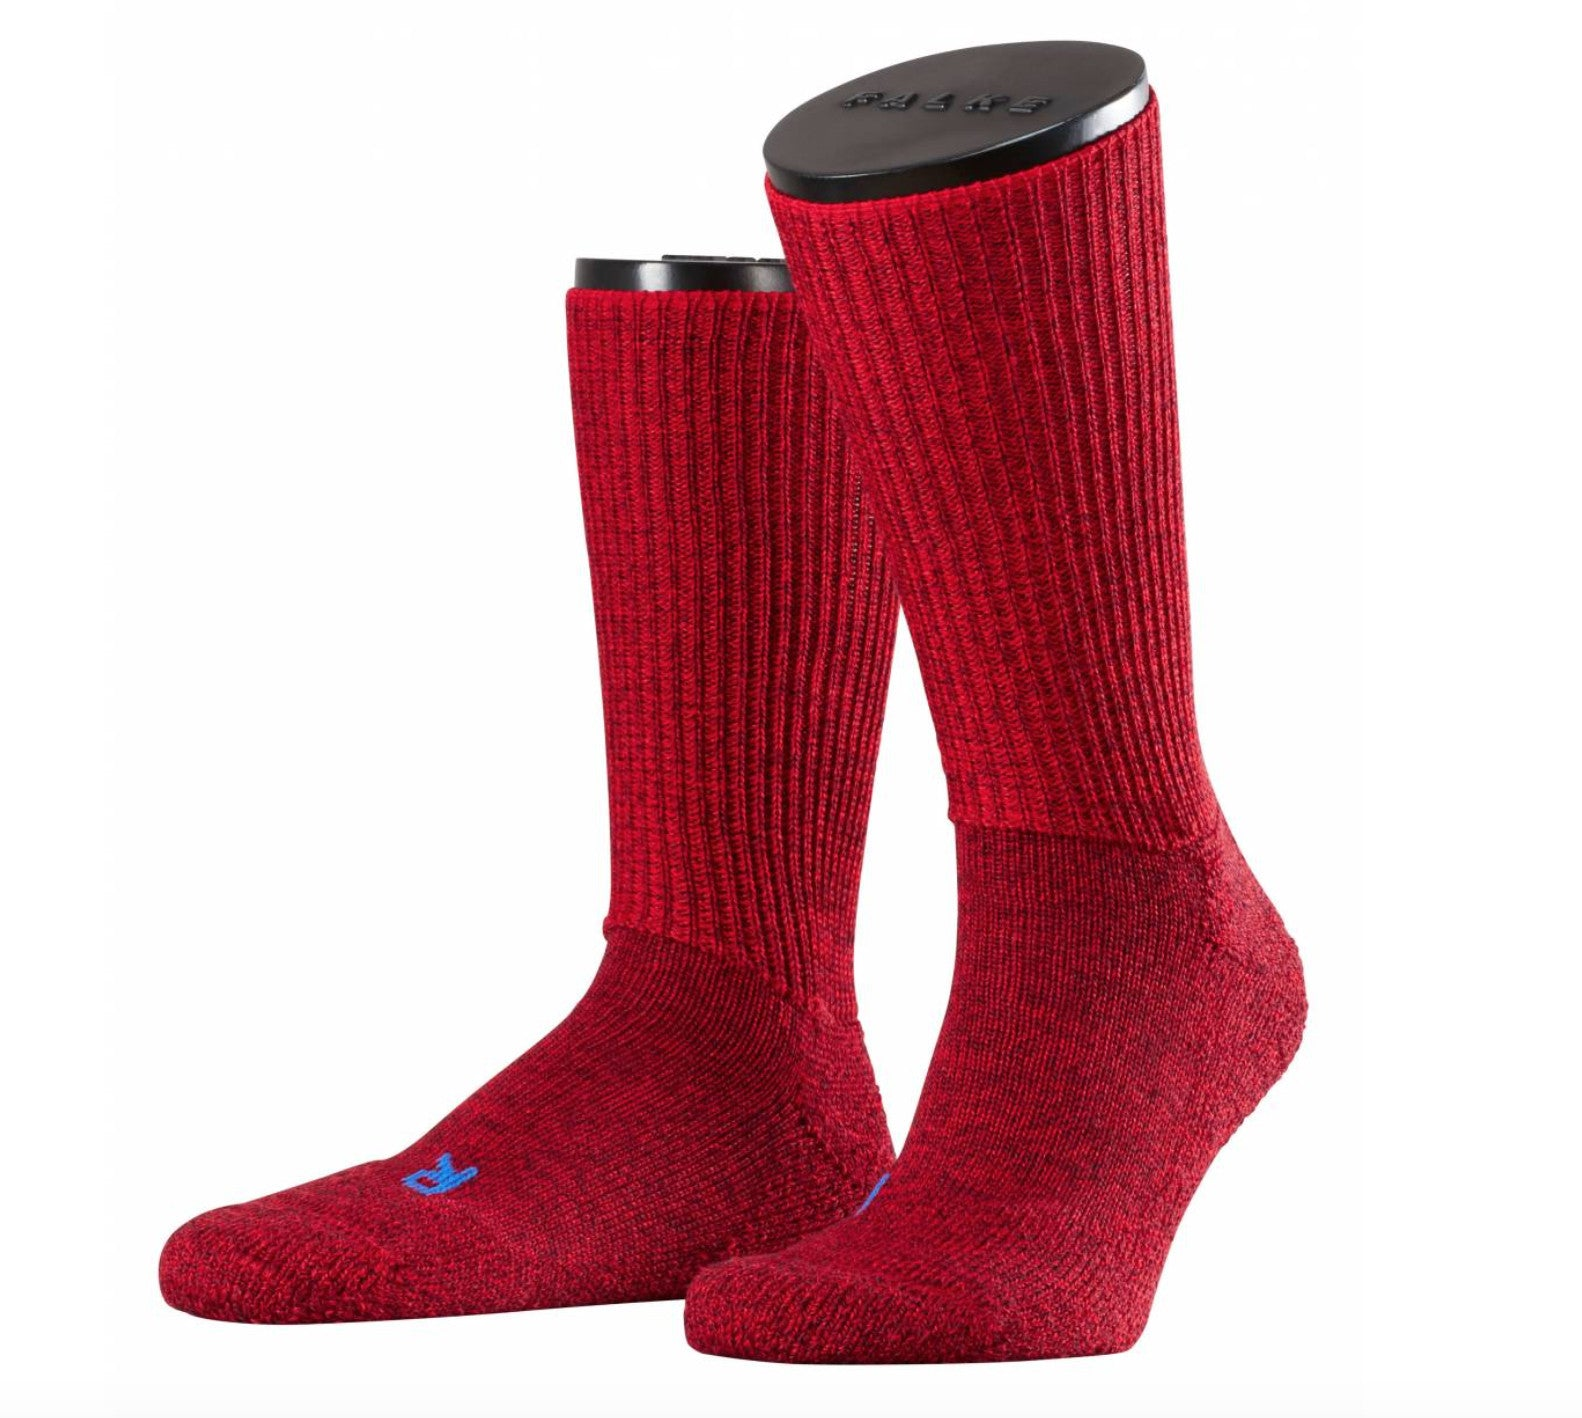 Falke Walkies Walking Socks - Scarlett